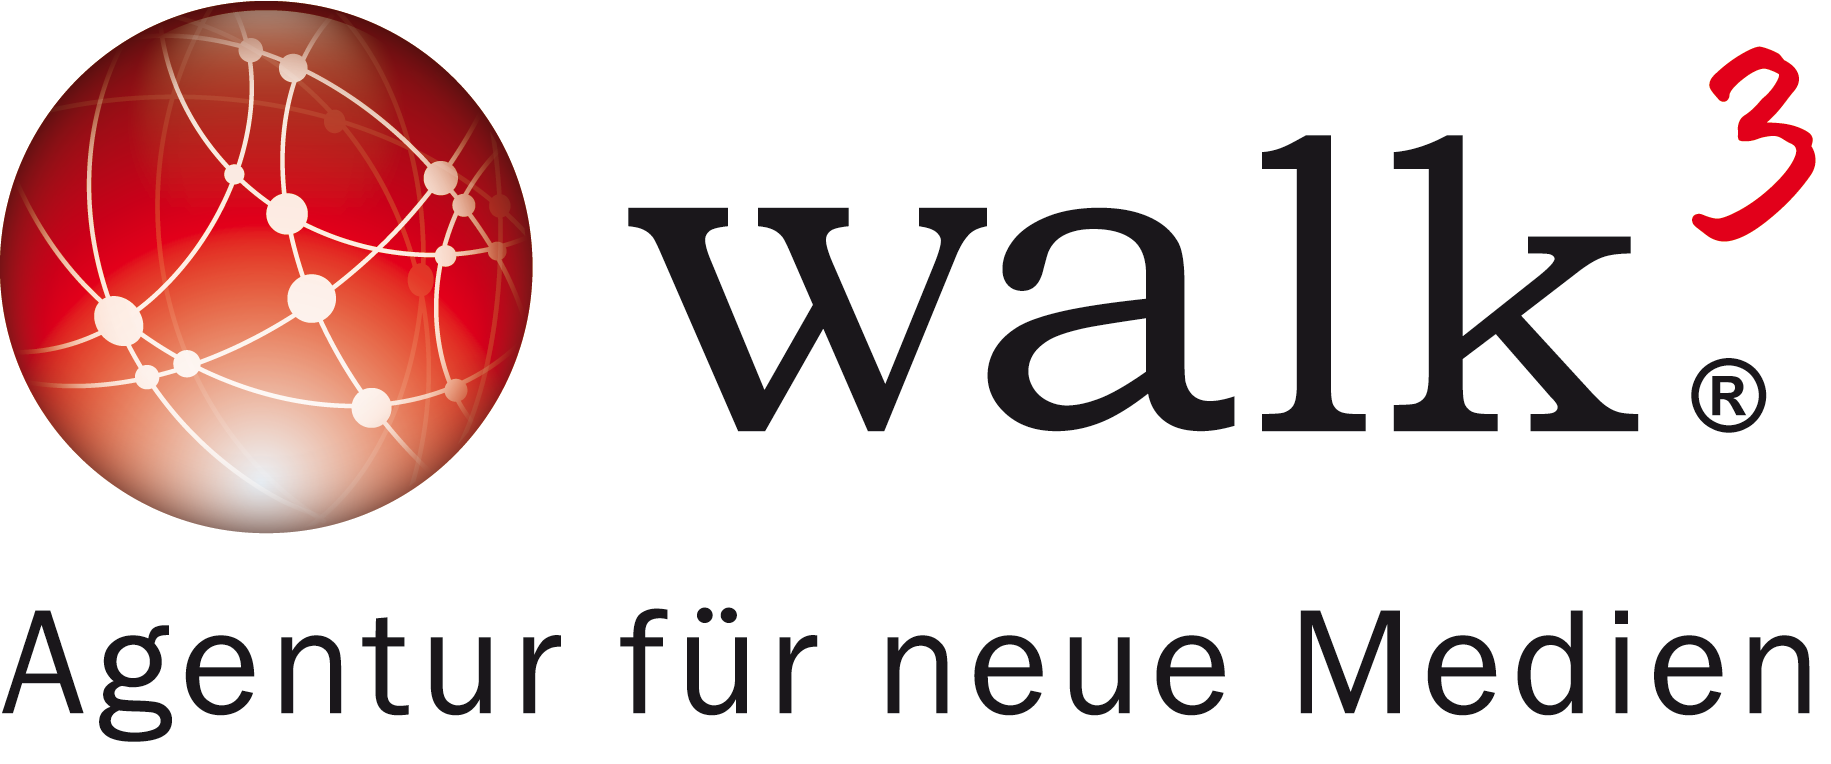 Walk3 GmbH & Co. KG